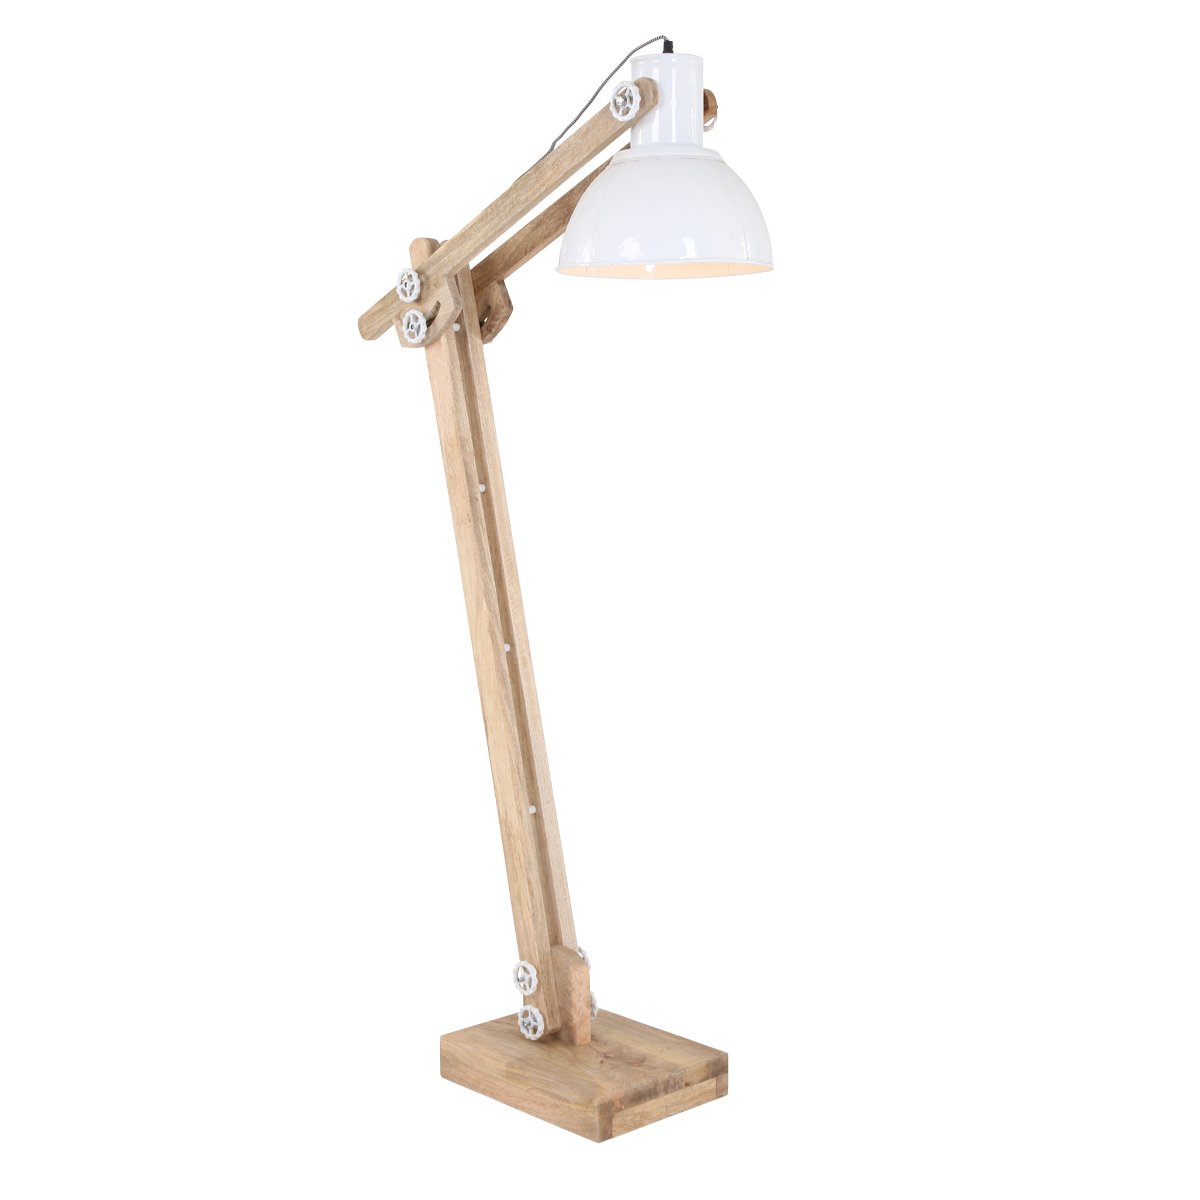 Interesting houten staande lamp with staande lamp betonlook for Staande lamp betonlook